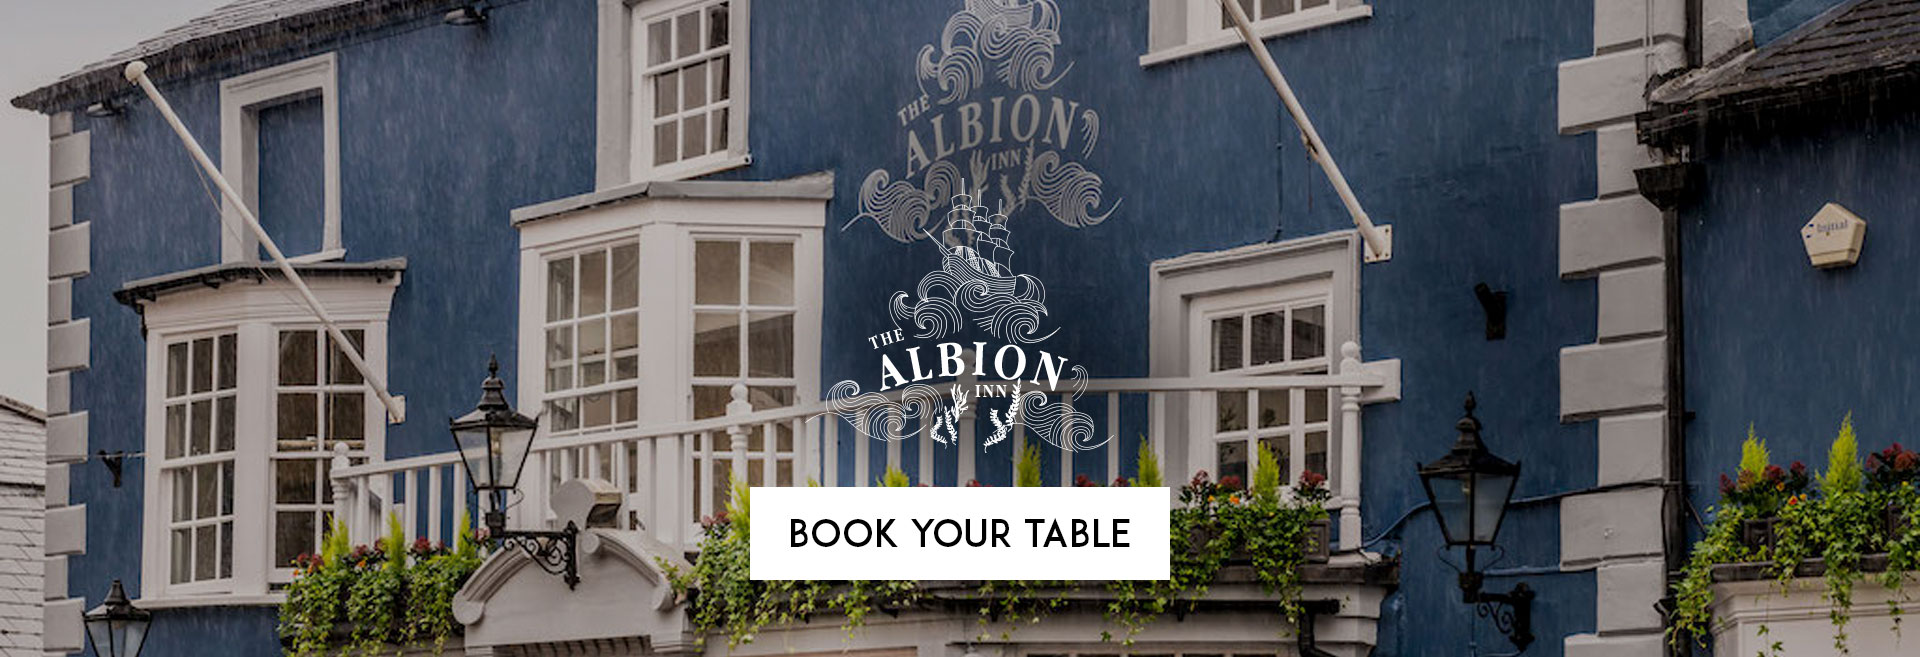 Book Your Table at The Albion Hotel